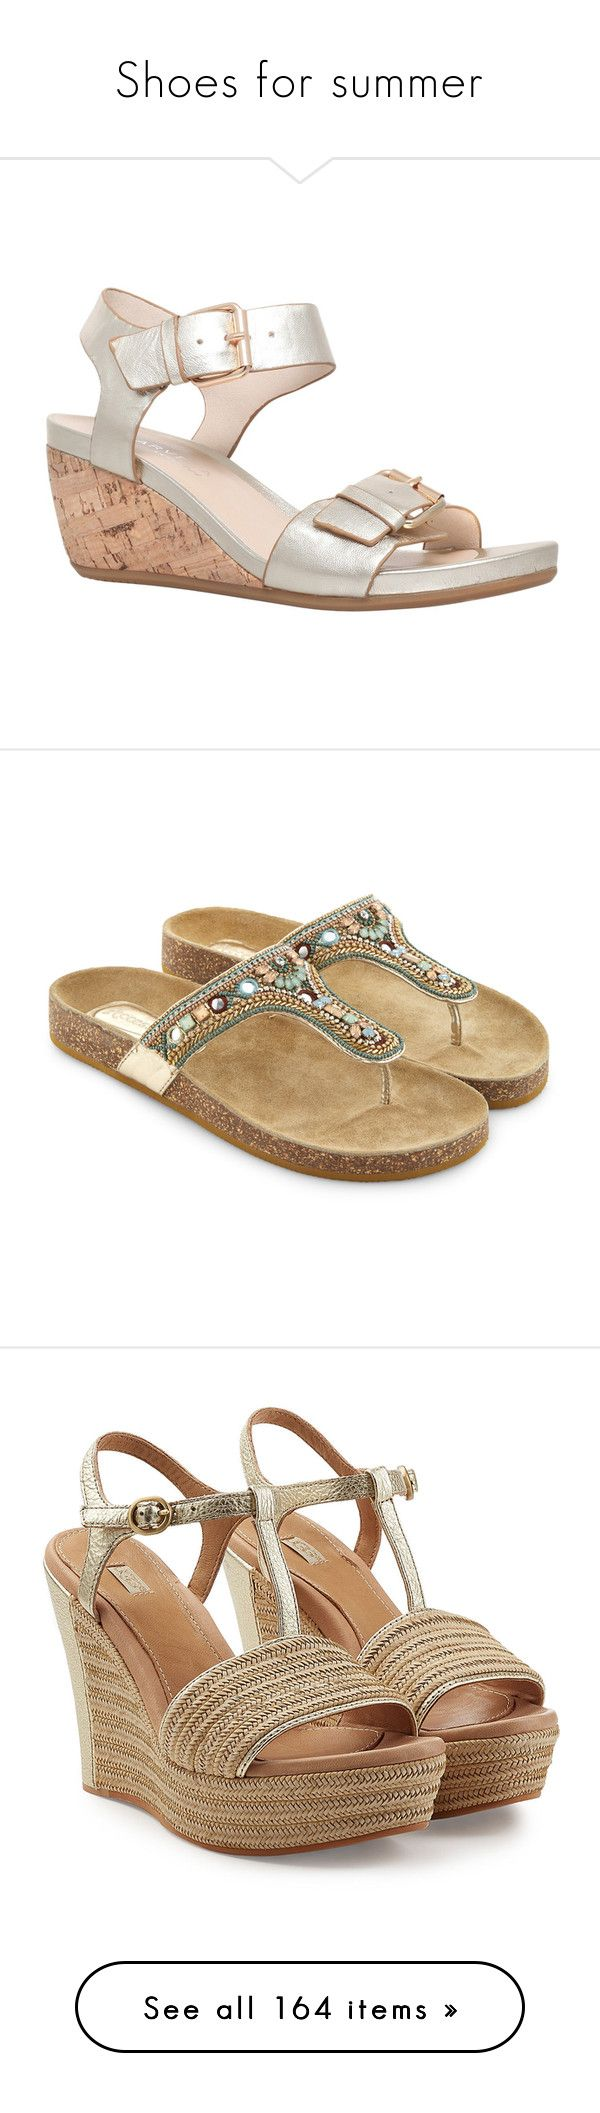 """""""Shoes for summer"""" by tasha1973 ❤ liked on Polyvore featuring shoes, sandals, gold, flat sandals, summer flat sandals, wedge sandals, low heel wedge sandals, flat shoes, beaded sandals and strap shoes"""